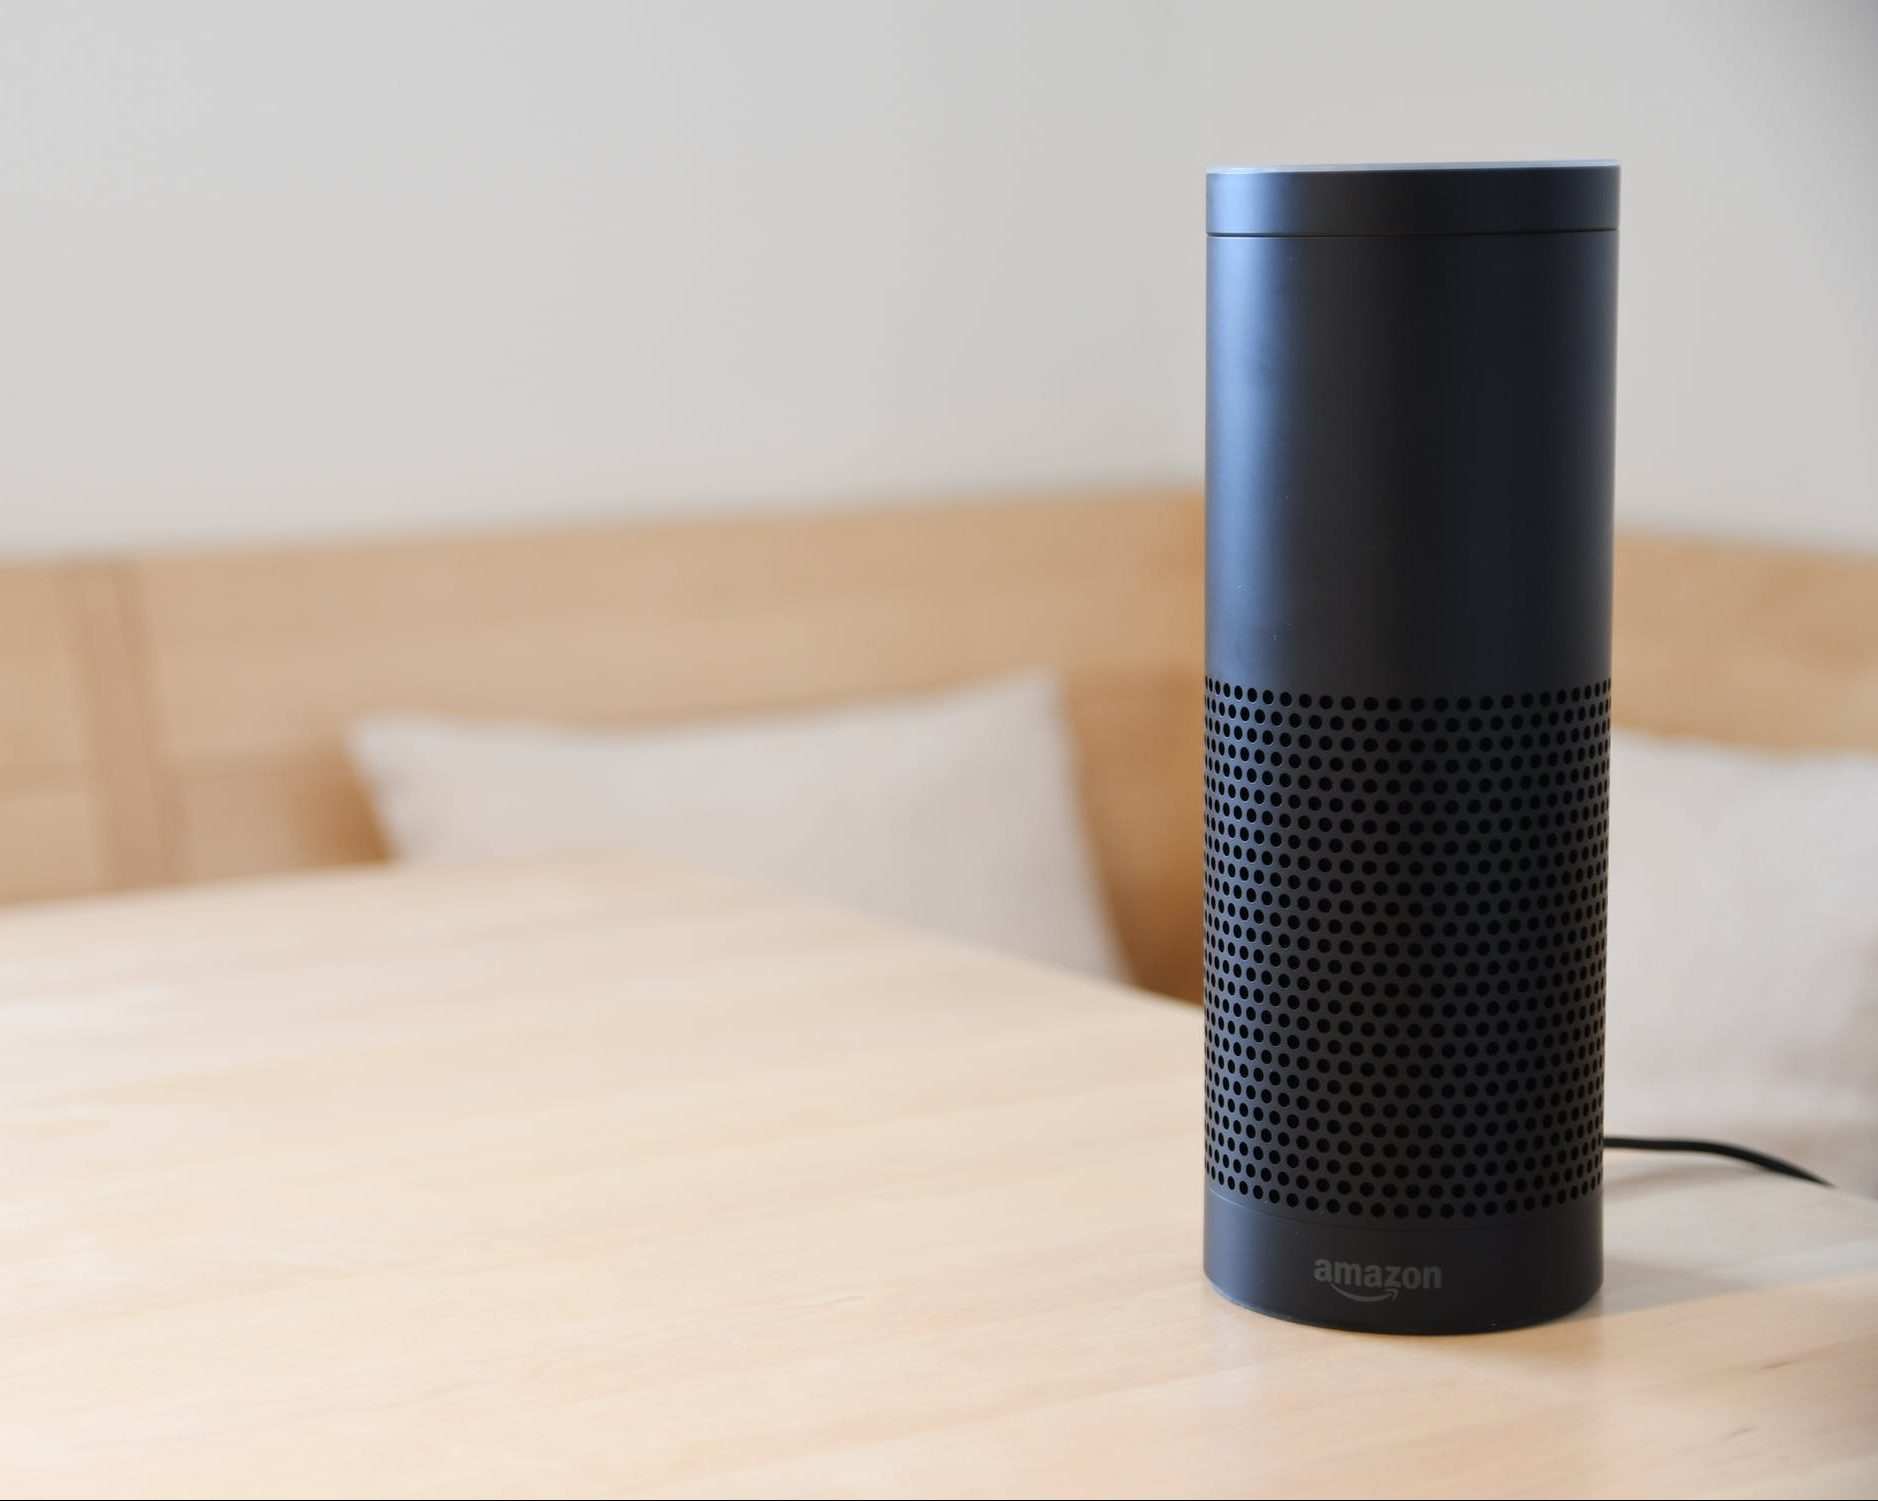 Alexa Doesn't Understand You